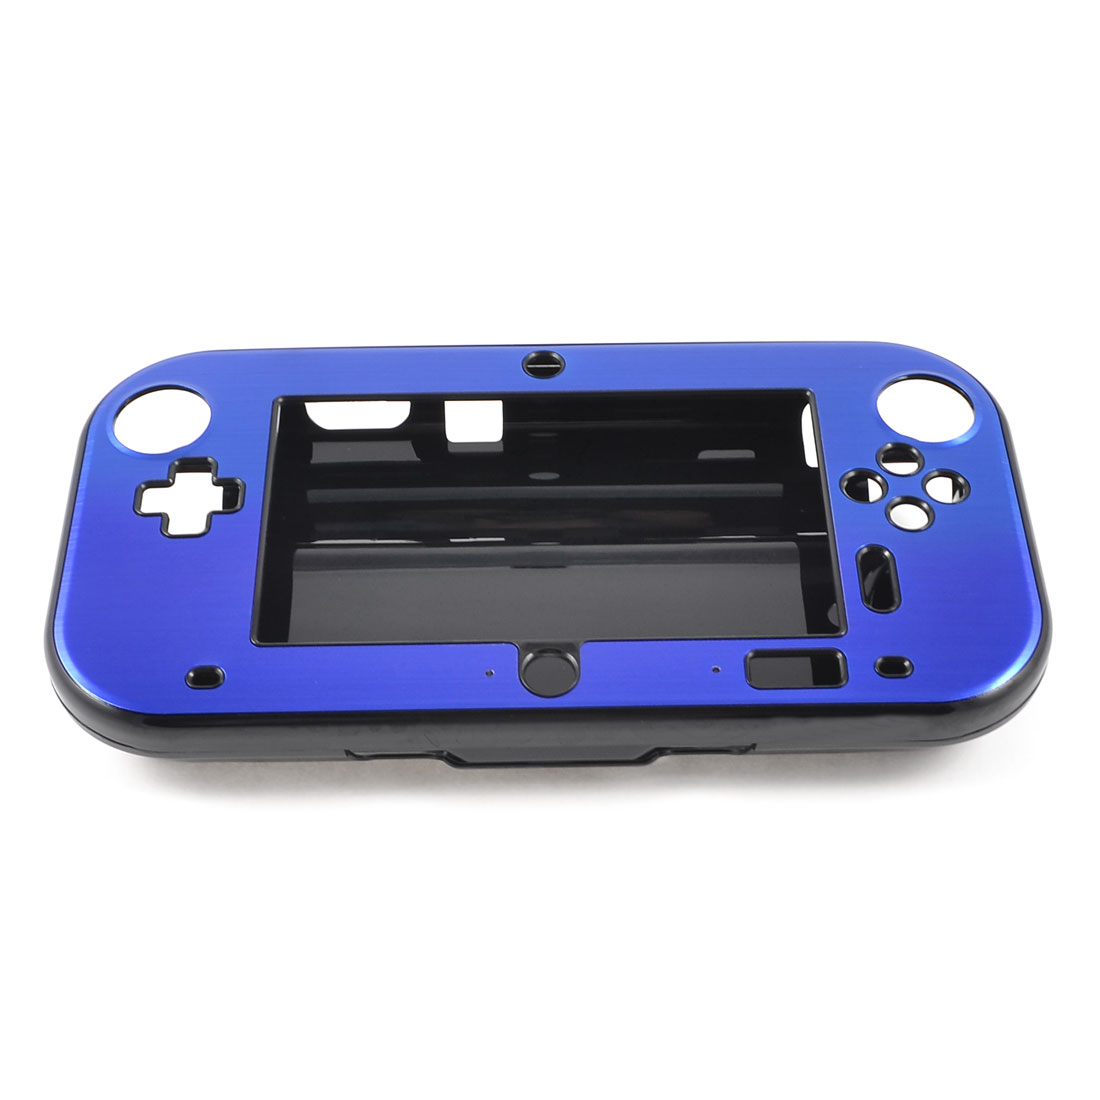 Blue Aluminum Coated Black Hard Case Cover for Nintendo Wii U Gamepad